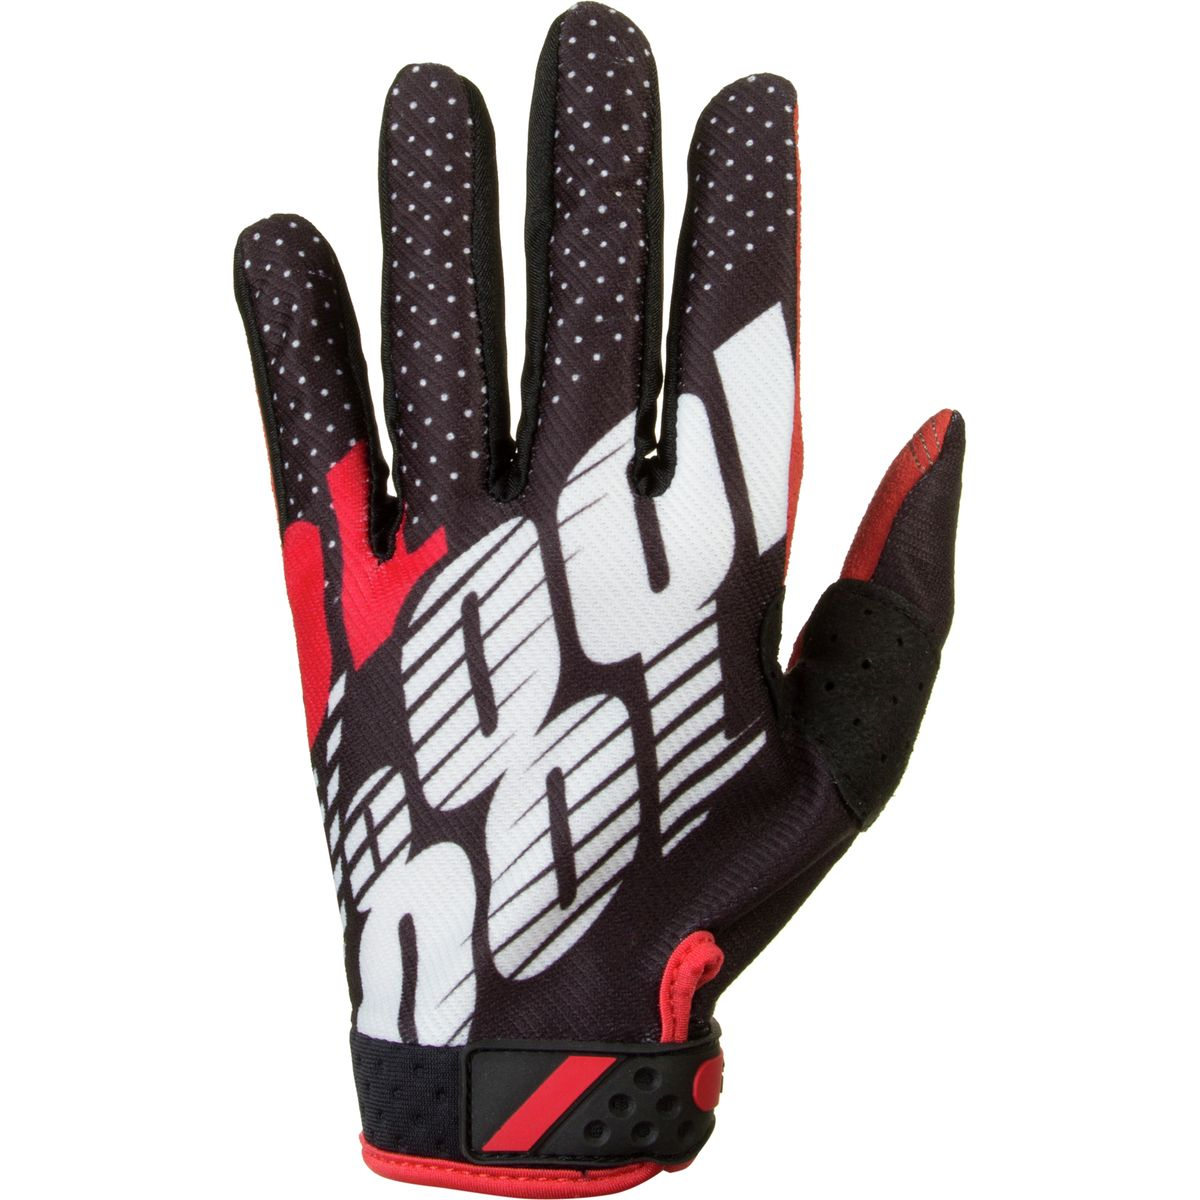 Adidas Long Finger Performance Gloves Weight Lifting: Men's Long Finger Mountain Bike